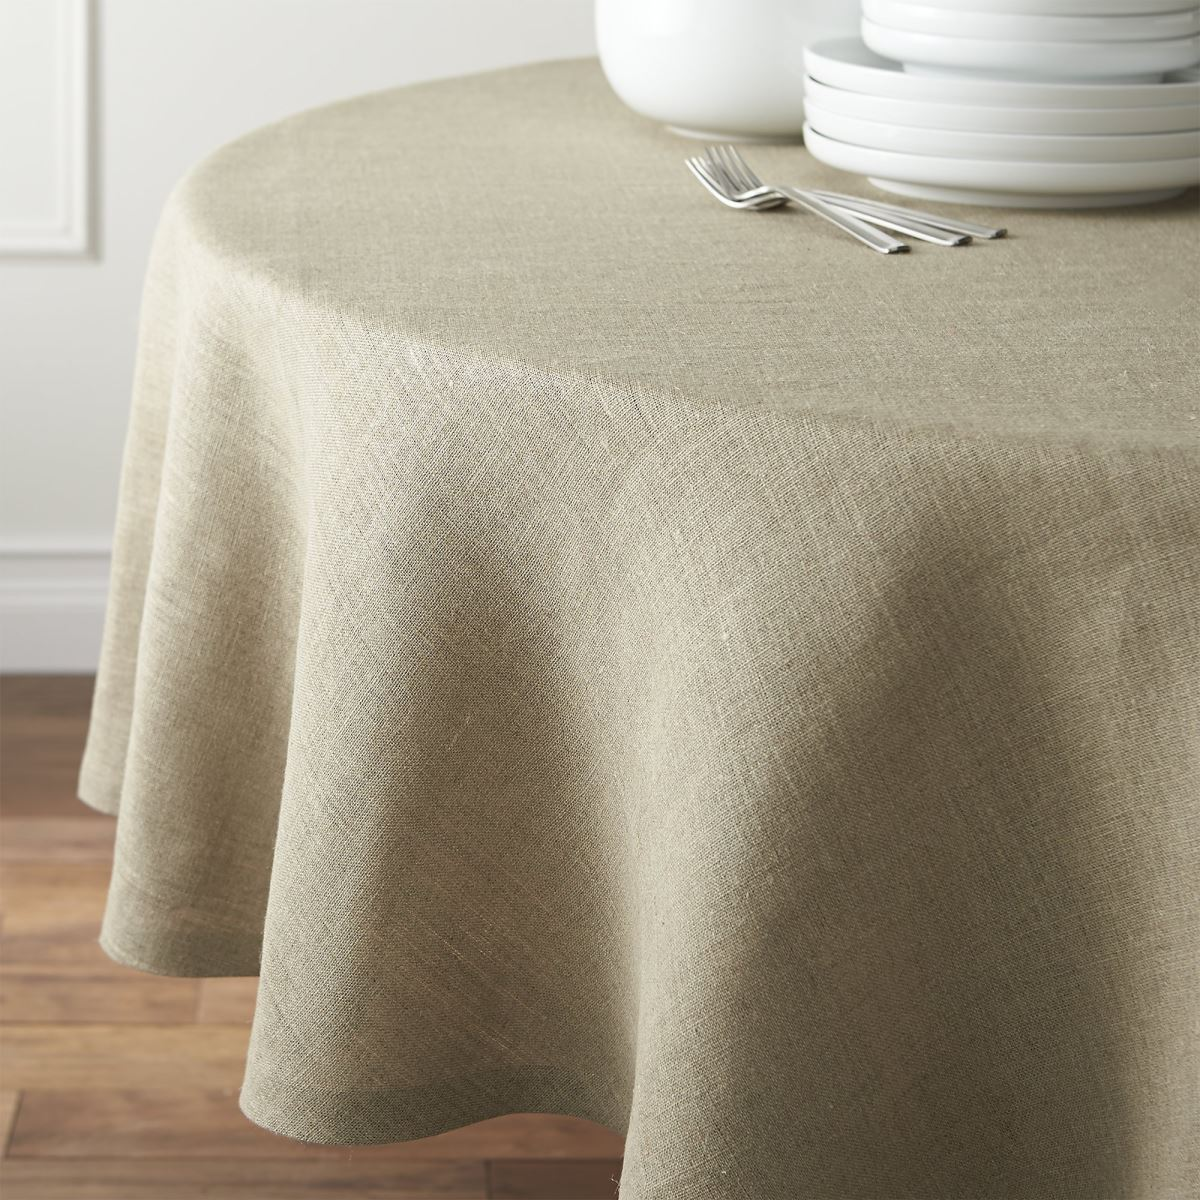 Round linen tablecloth from Crate & Barrel